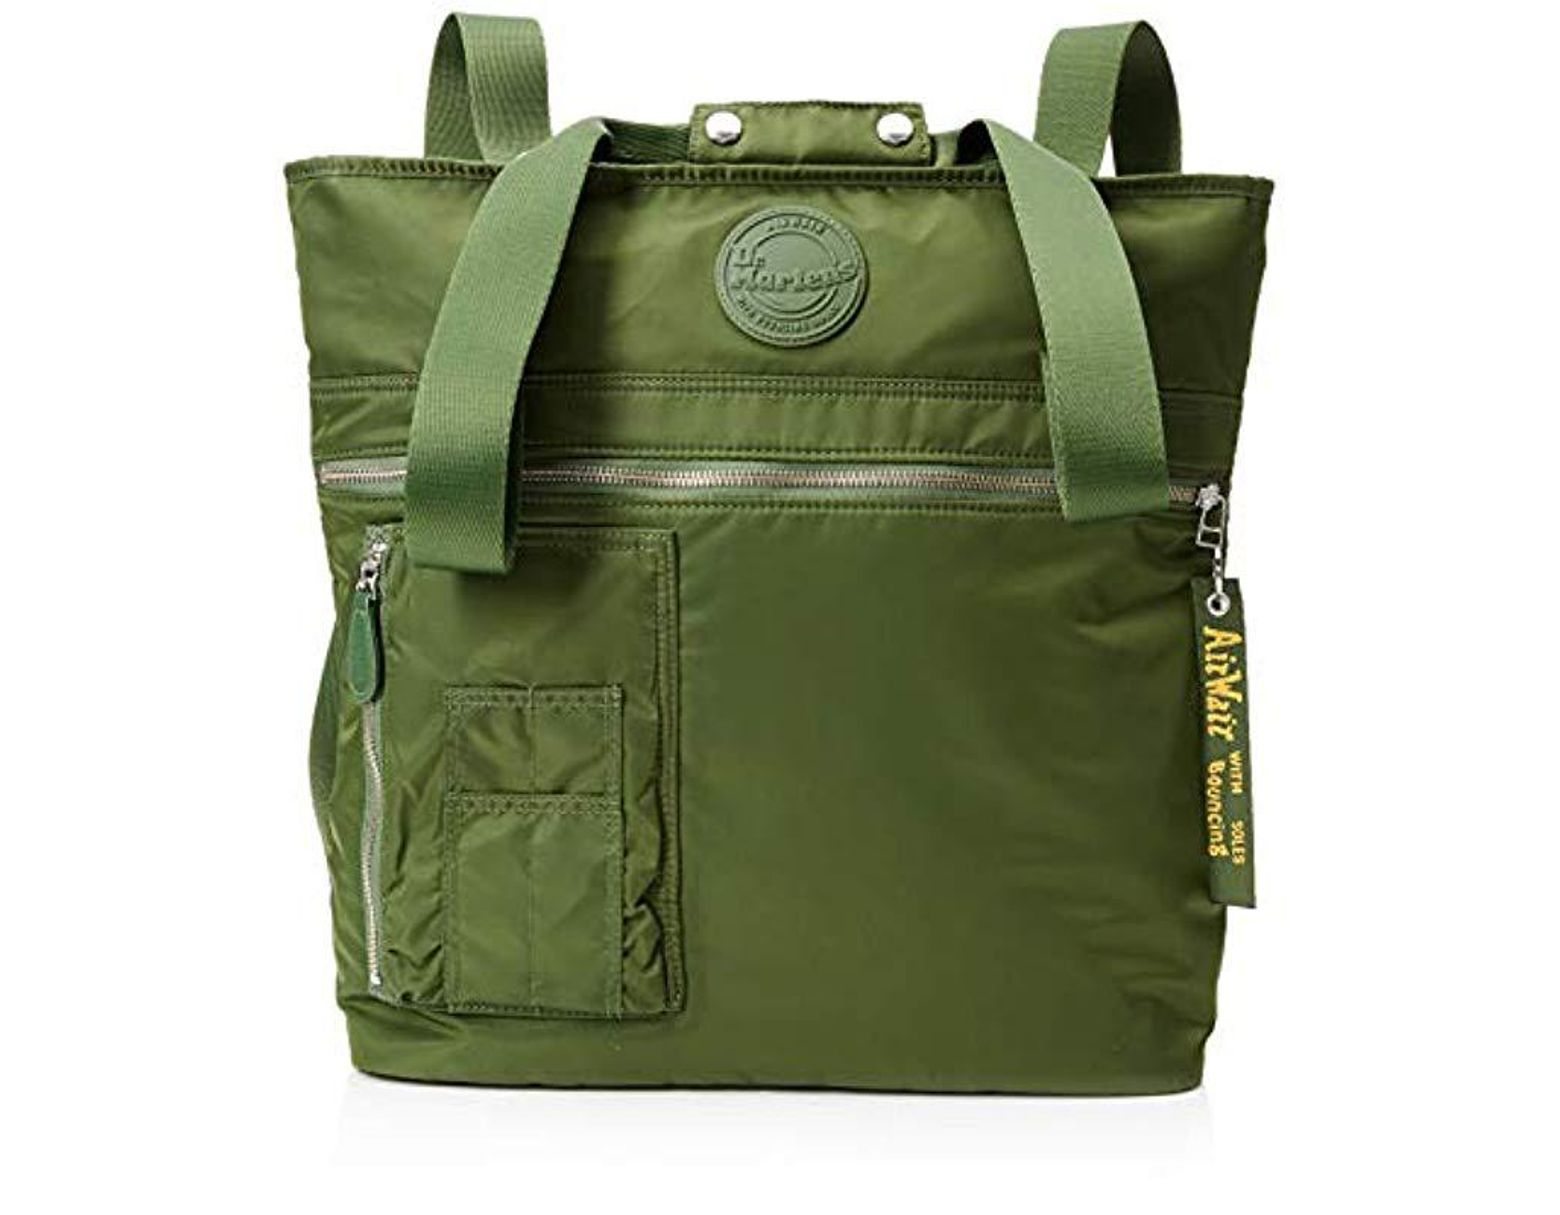 74ce6fbc25948 Dr. Martens Unisex Flight Tote Canvas And Beach Tote Bag in Green ...